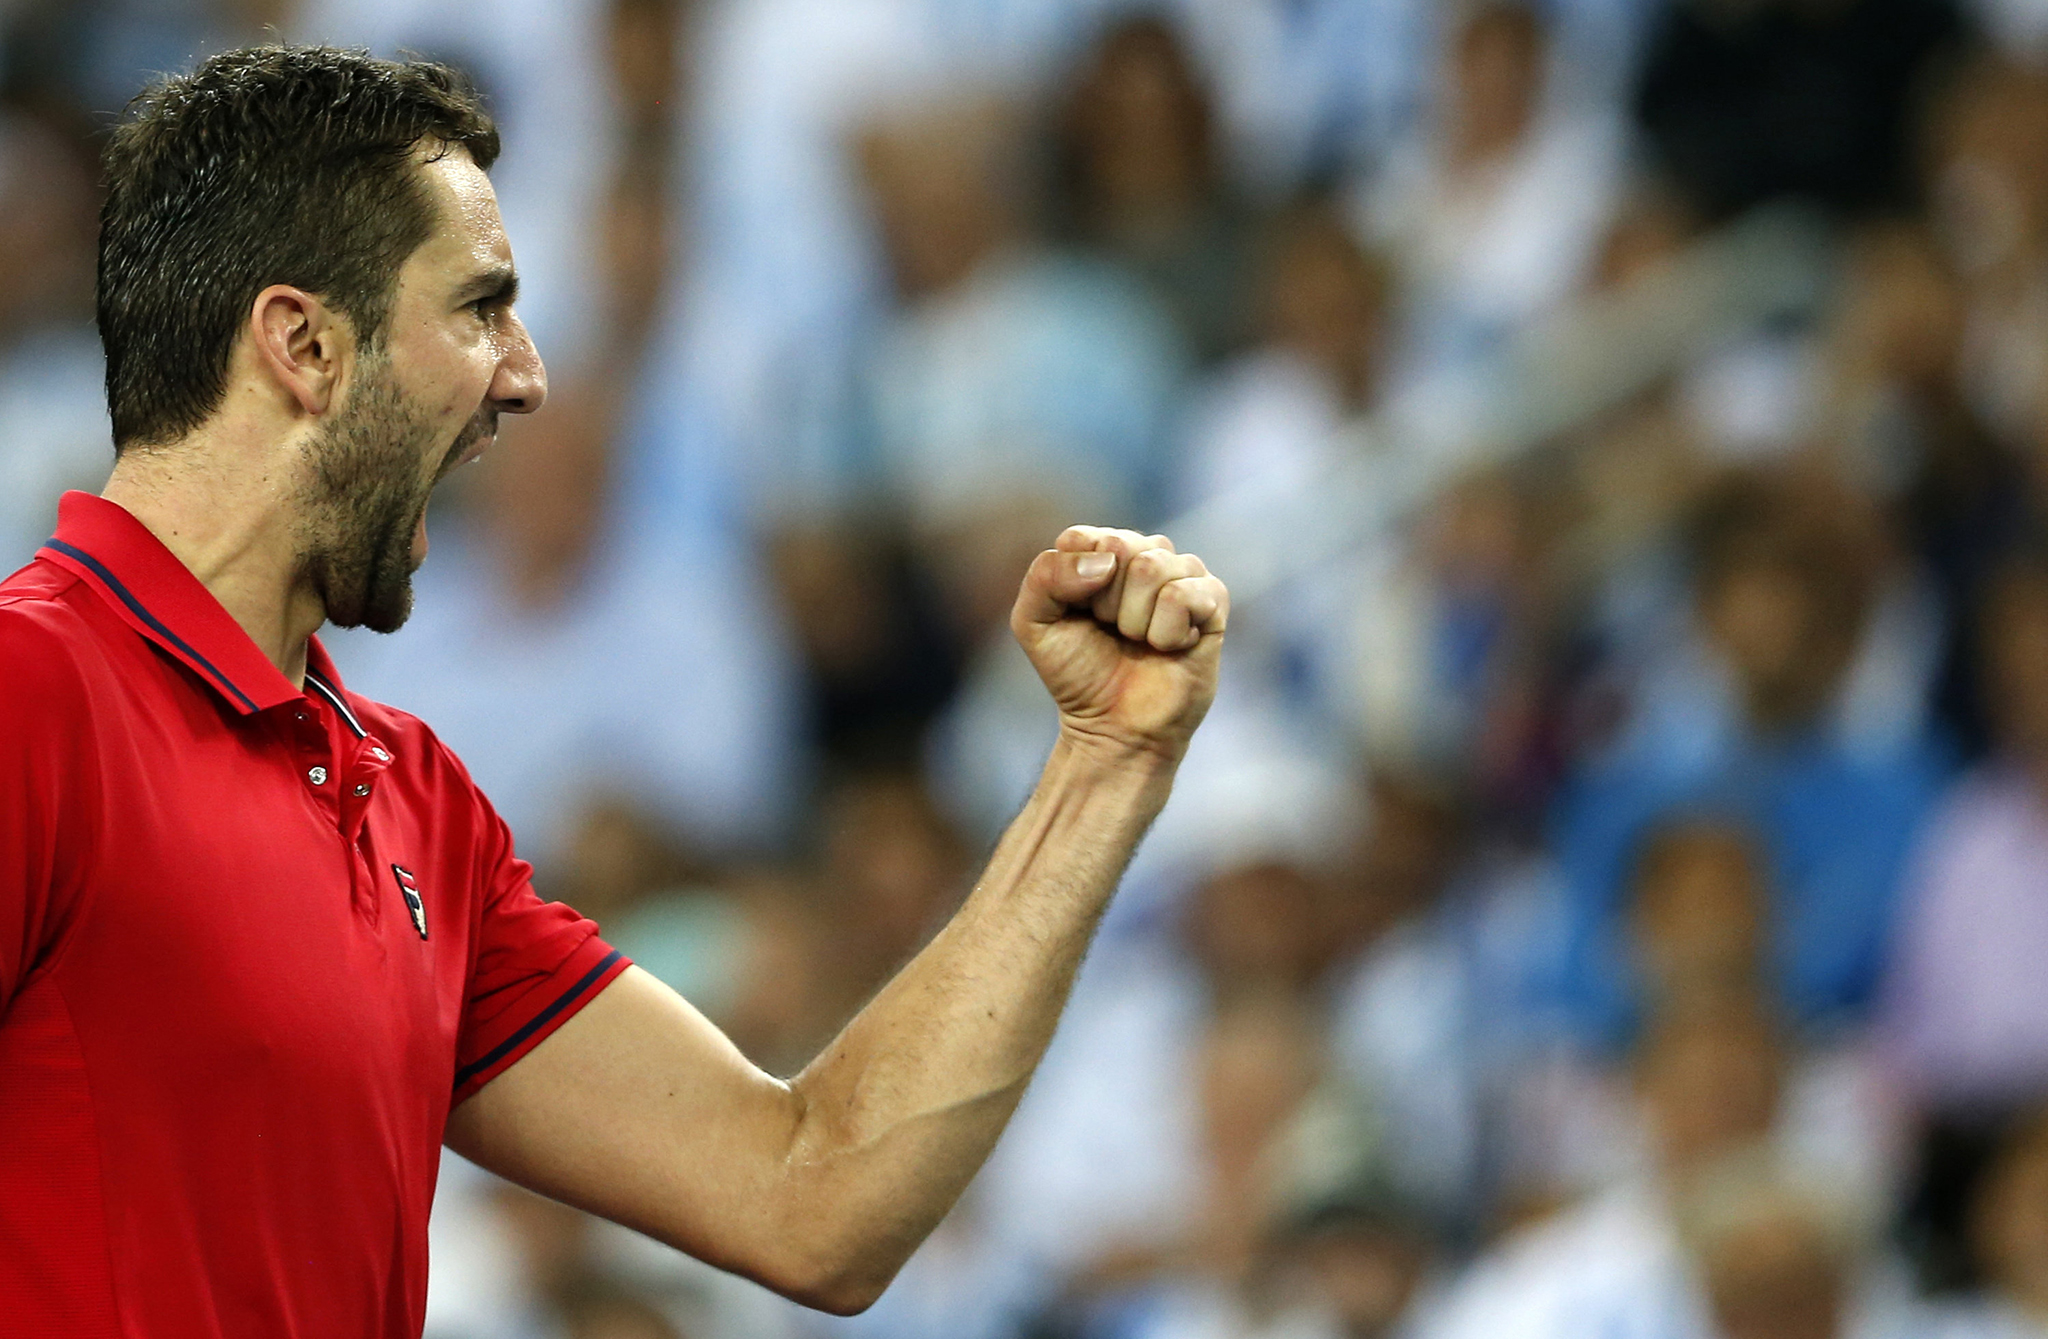 Croatia's Marin Cilic celebrates after winning a point against Argentina's Federico Delbonis, during their singles match at the Davis Cup tennis tournament final between the two countries in Zagreb, Croatia, Friday, Nov. 25, 2016. (AP Photo/Darko Vojinovic)